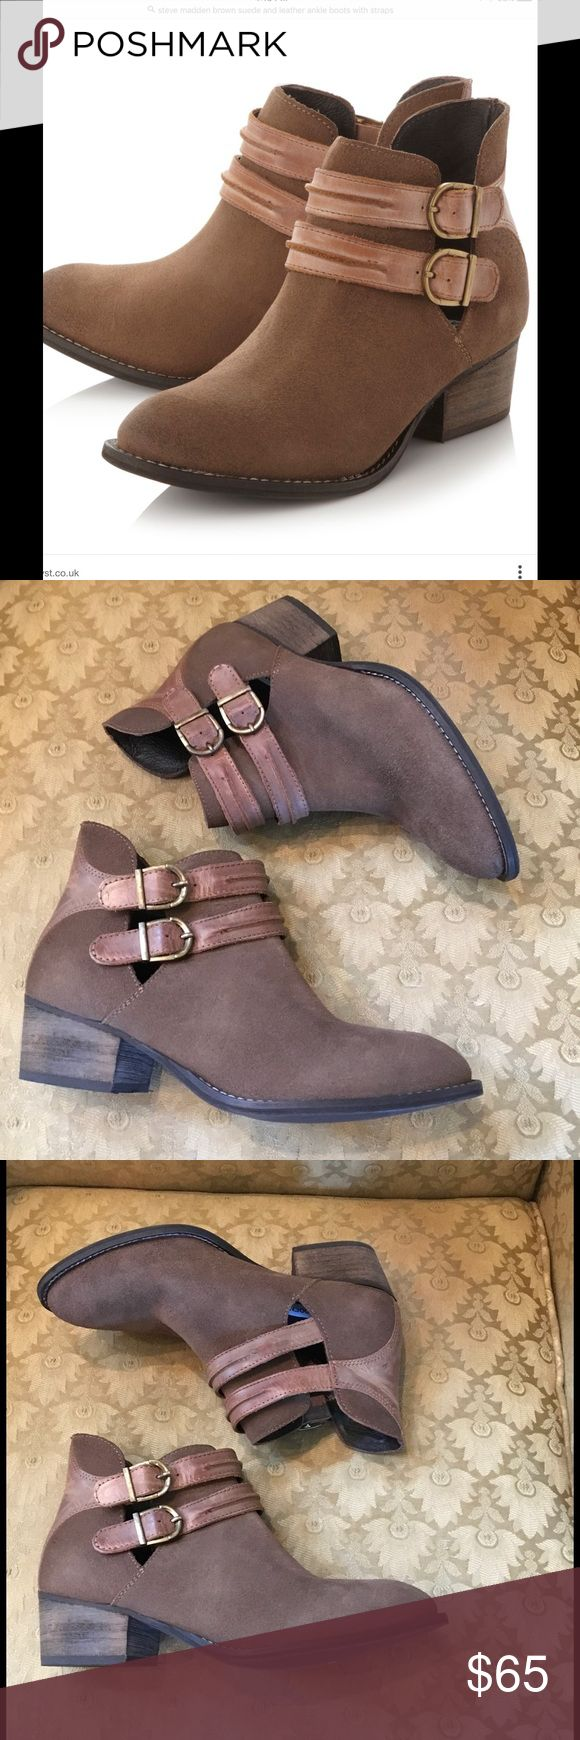 Steve Madden suede and leather ankle boot Sz 8 NEW NEVER worn super cute and trendy ankle boots with straps Steve Madden Shoes Ankle Boots & Booties